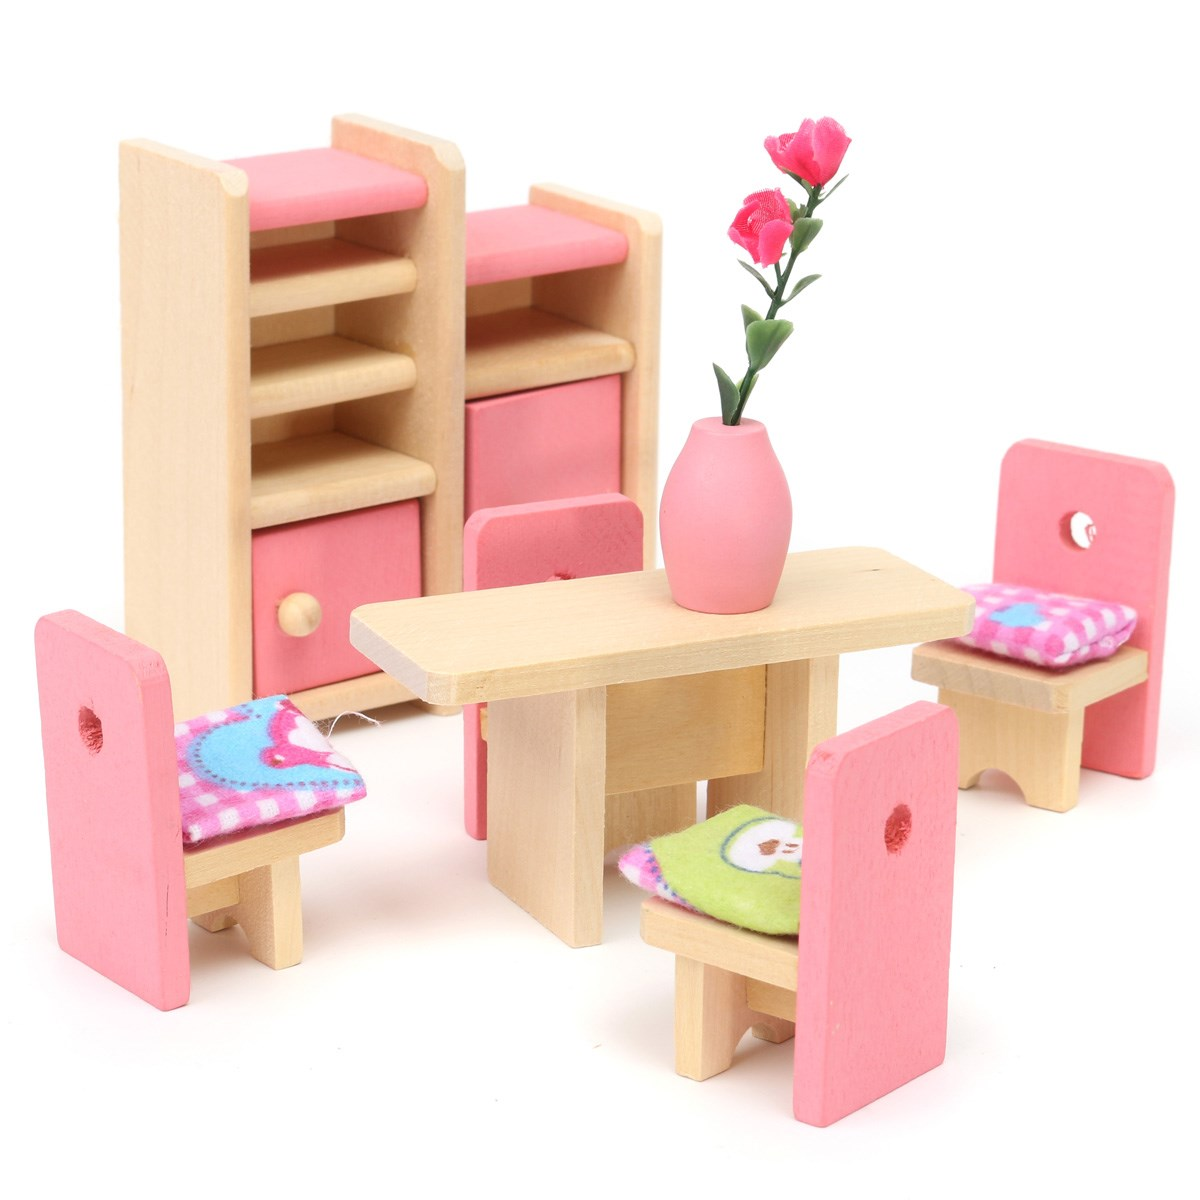 Wooden Delicate Dollhouse Furniture Toys Miniature For Kids Children Pretend Play 6 Room set/4 Dolls Toys(China (Mainland))